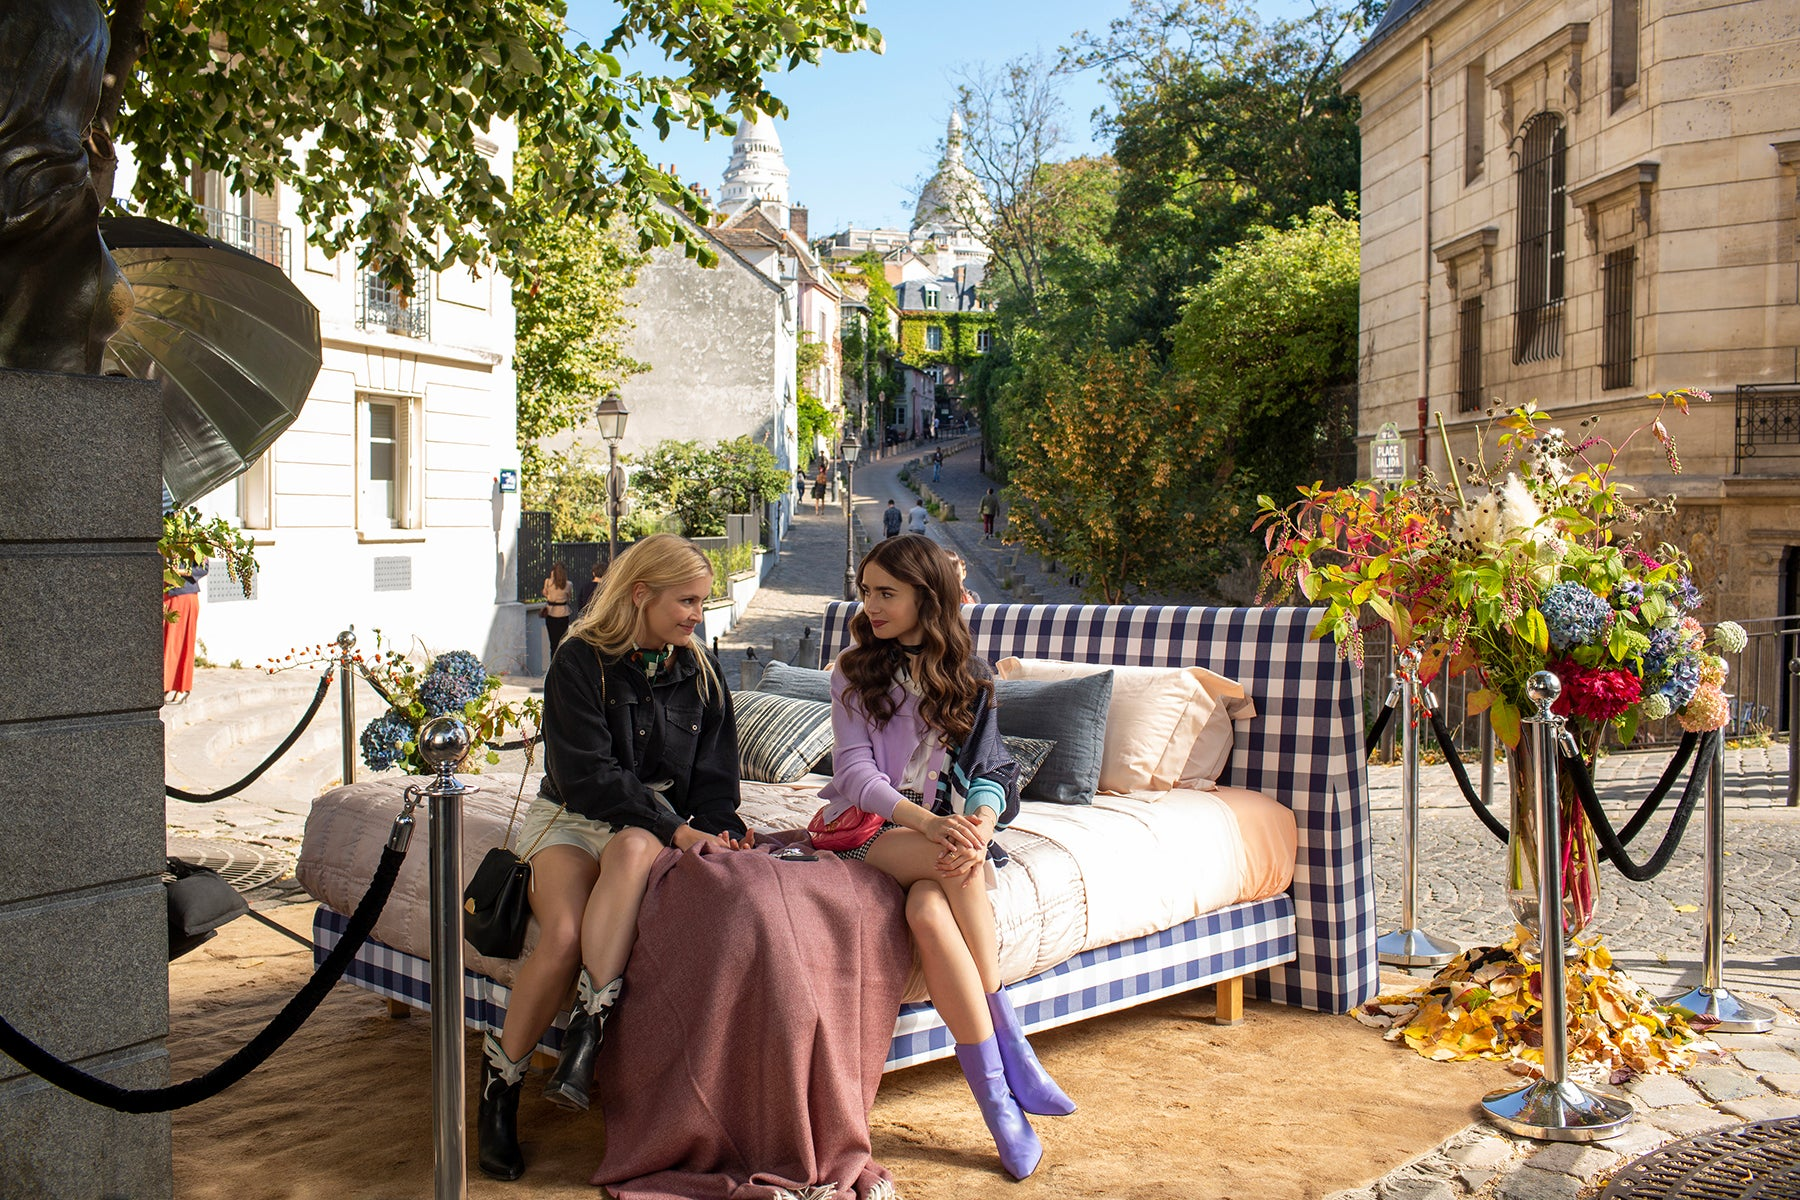 """Camille Razat and Lily Collins in """"Emily in Paris"""" (2020)."""